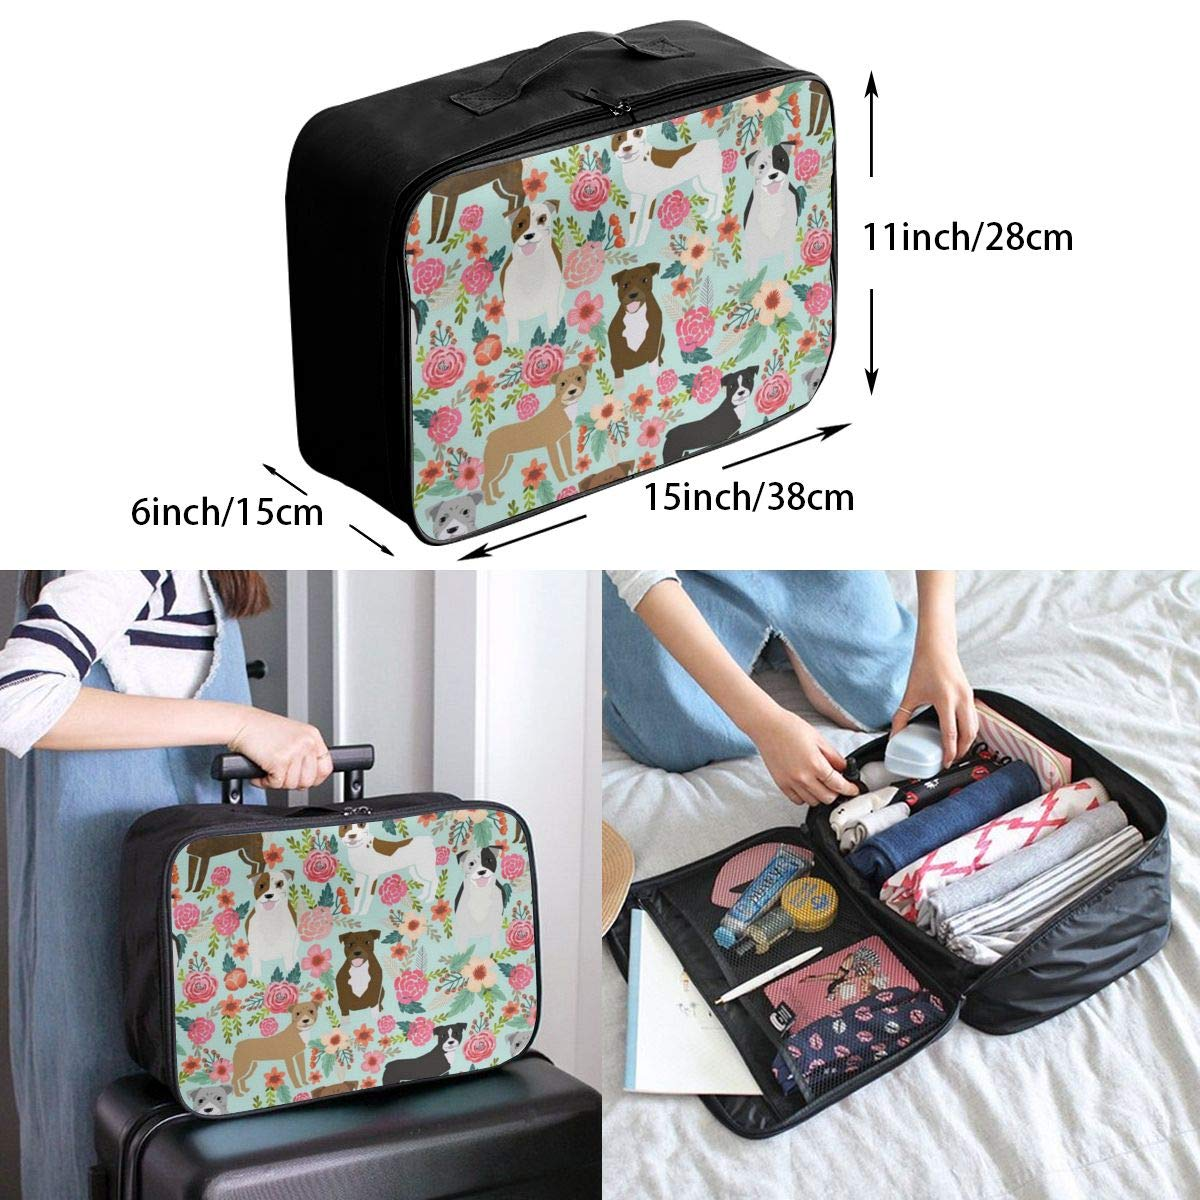 Travel Duffle Bag In Trolley Handle Lightweight Weekend Bags Nylon Luggage Duffel Bag Floral Sweet Bouquets In Navy Holiday Overnight Carry On Bag Gym Sports Tote Bag